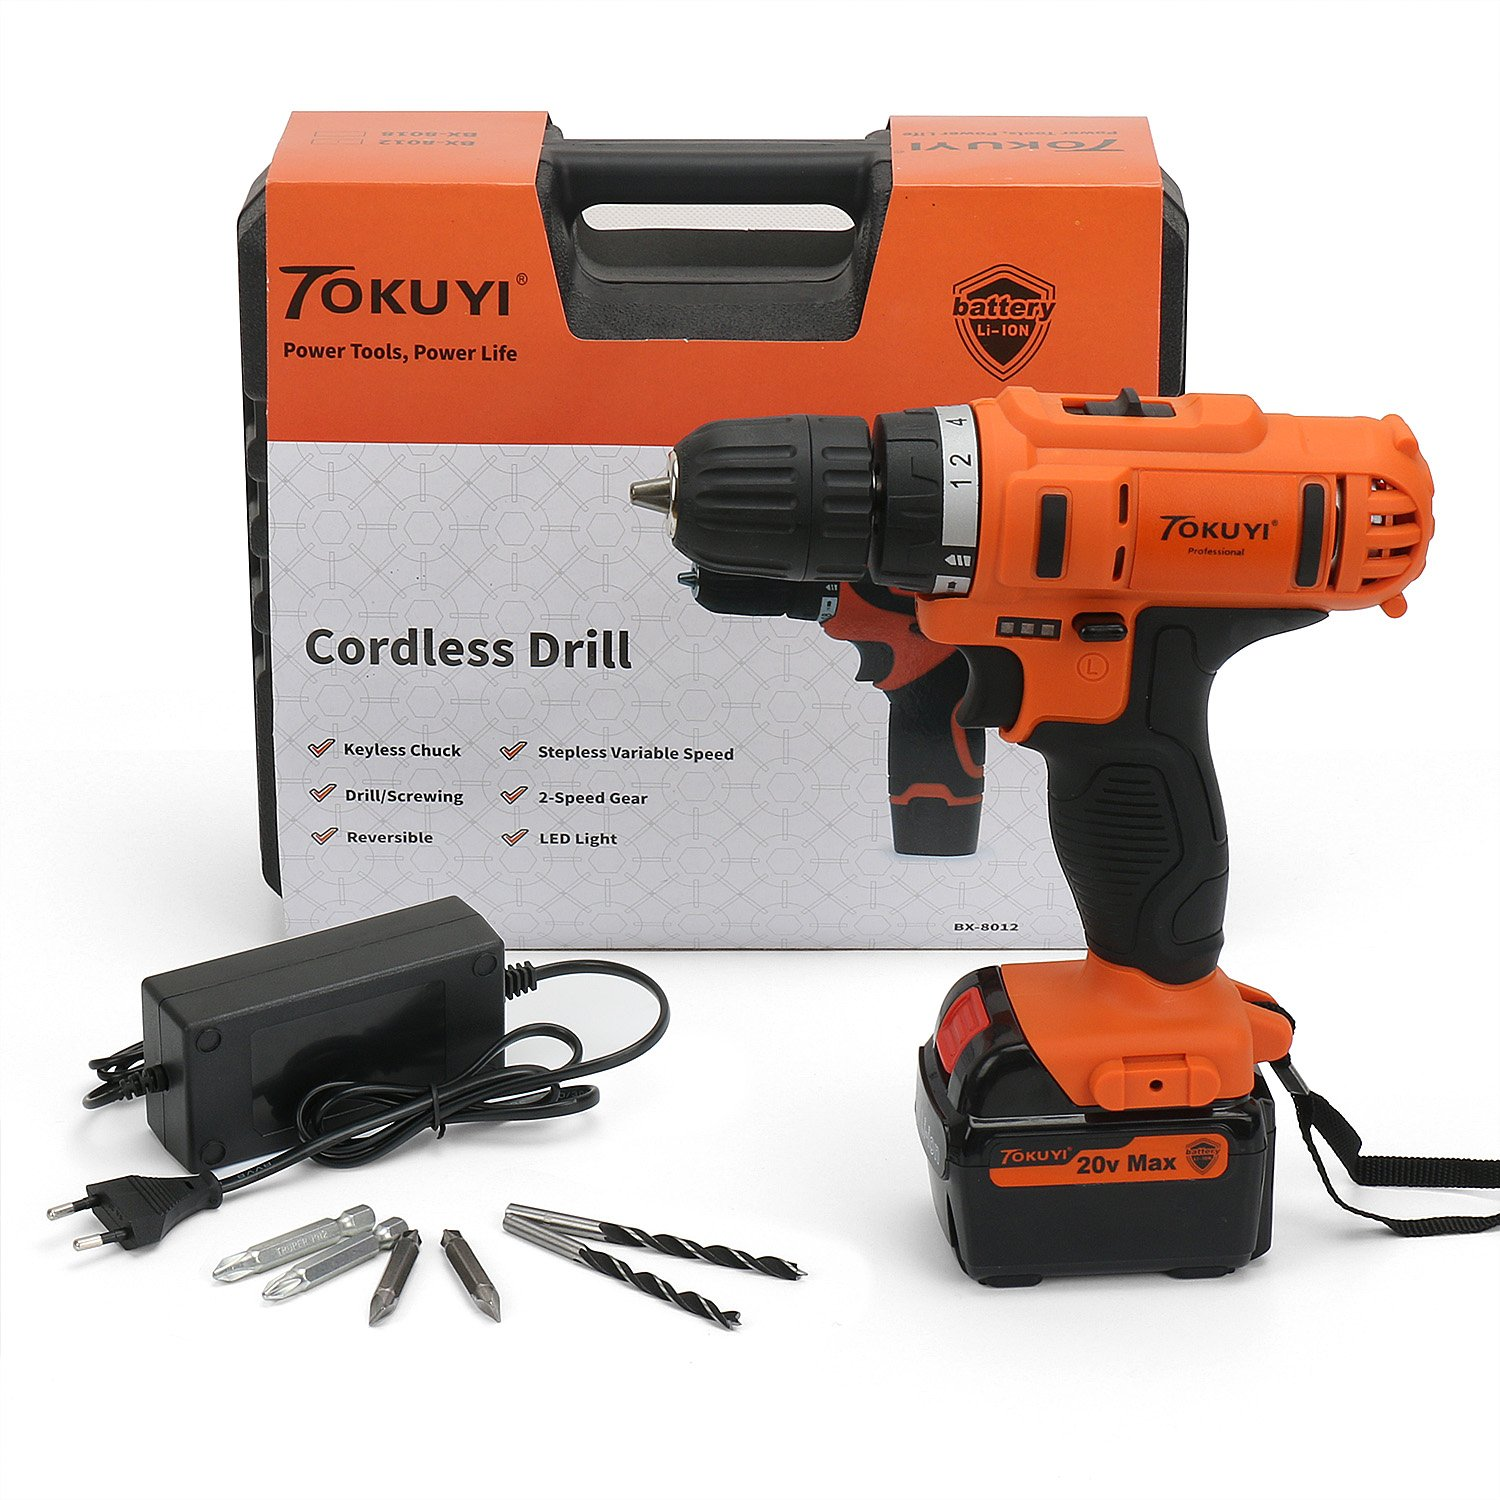 Tokuyi 20V MAX Lithium-Ion Cordless Drill Driver Kit, 3/8'' Keyless Chuck, 2-Speed with Bits, LED Light, Battery & Fast Charger